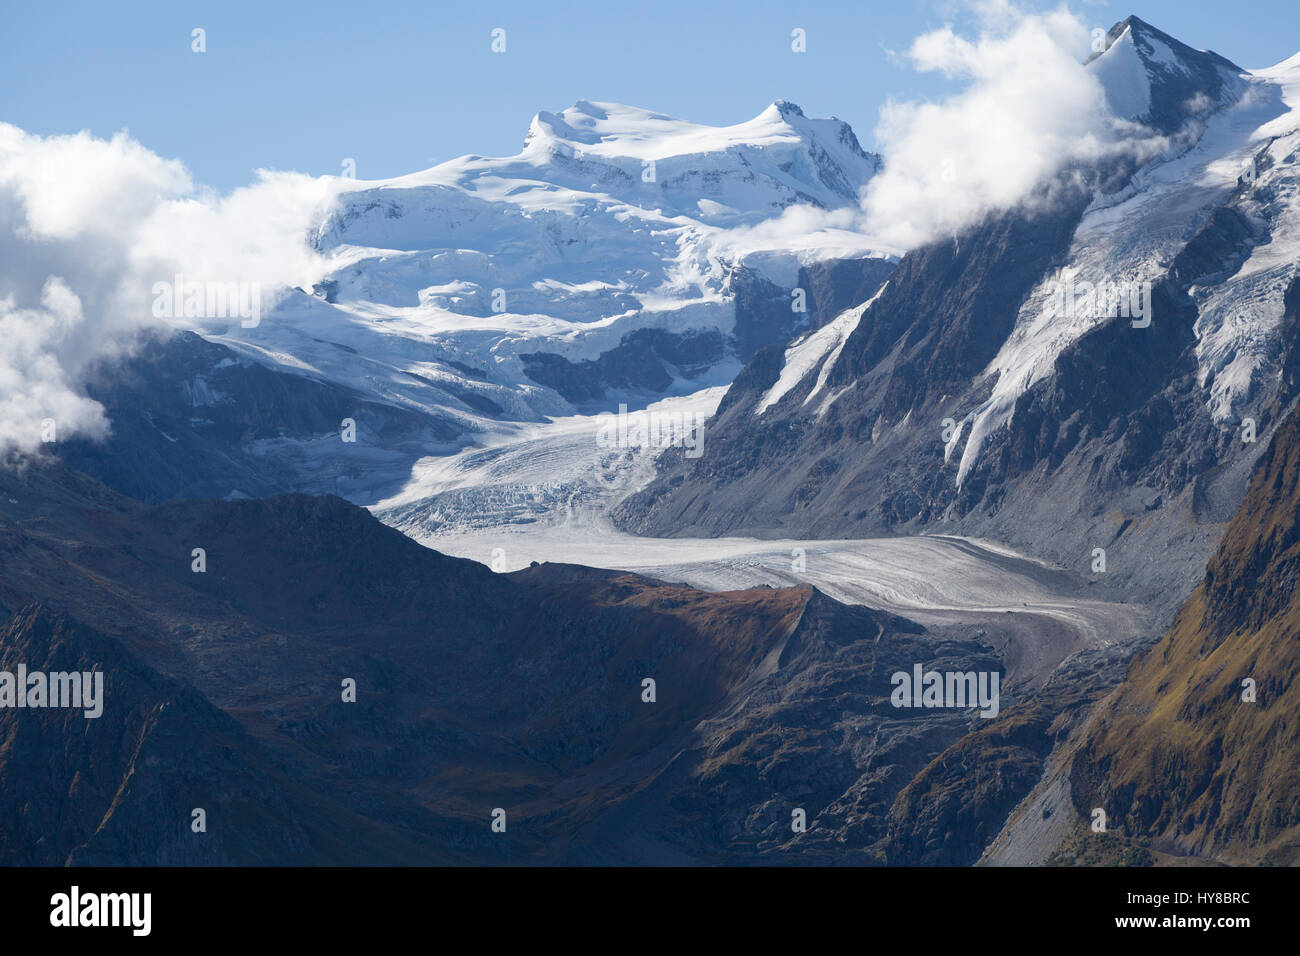 View from Cabane Du Mont Fort, looking towards the' Grand Combin' and the 'Glacier de Corbassiere' - Stock Image